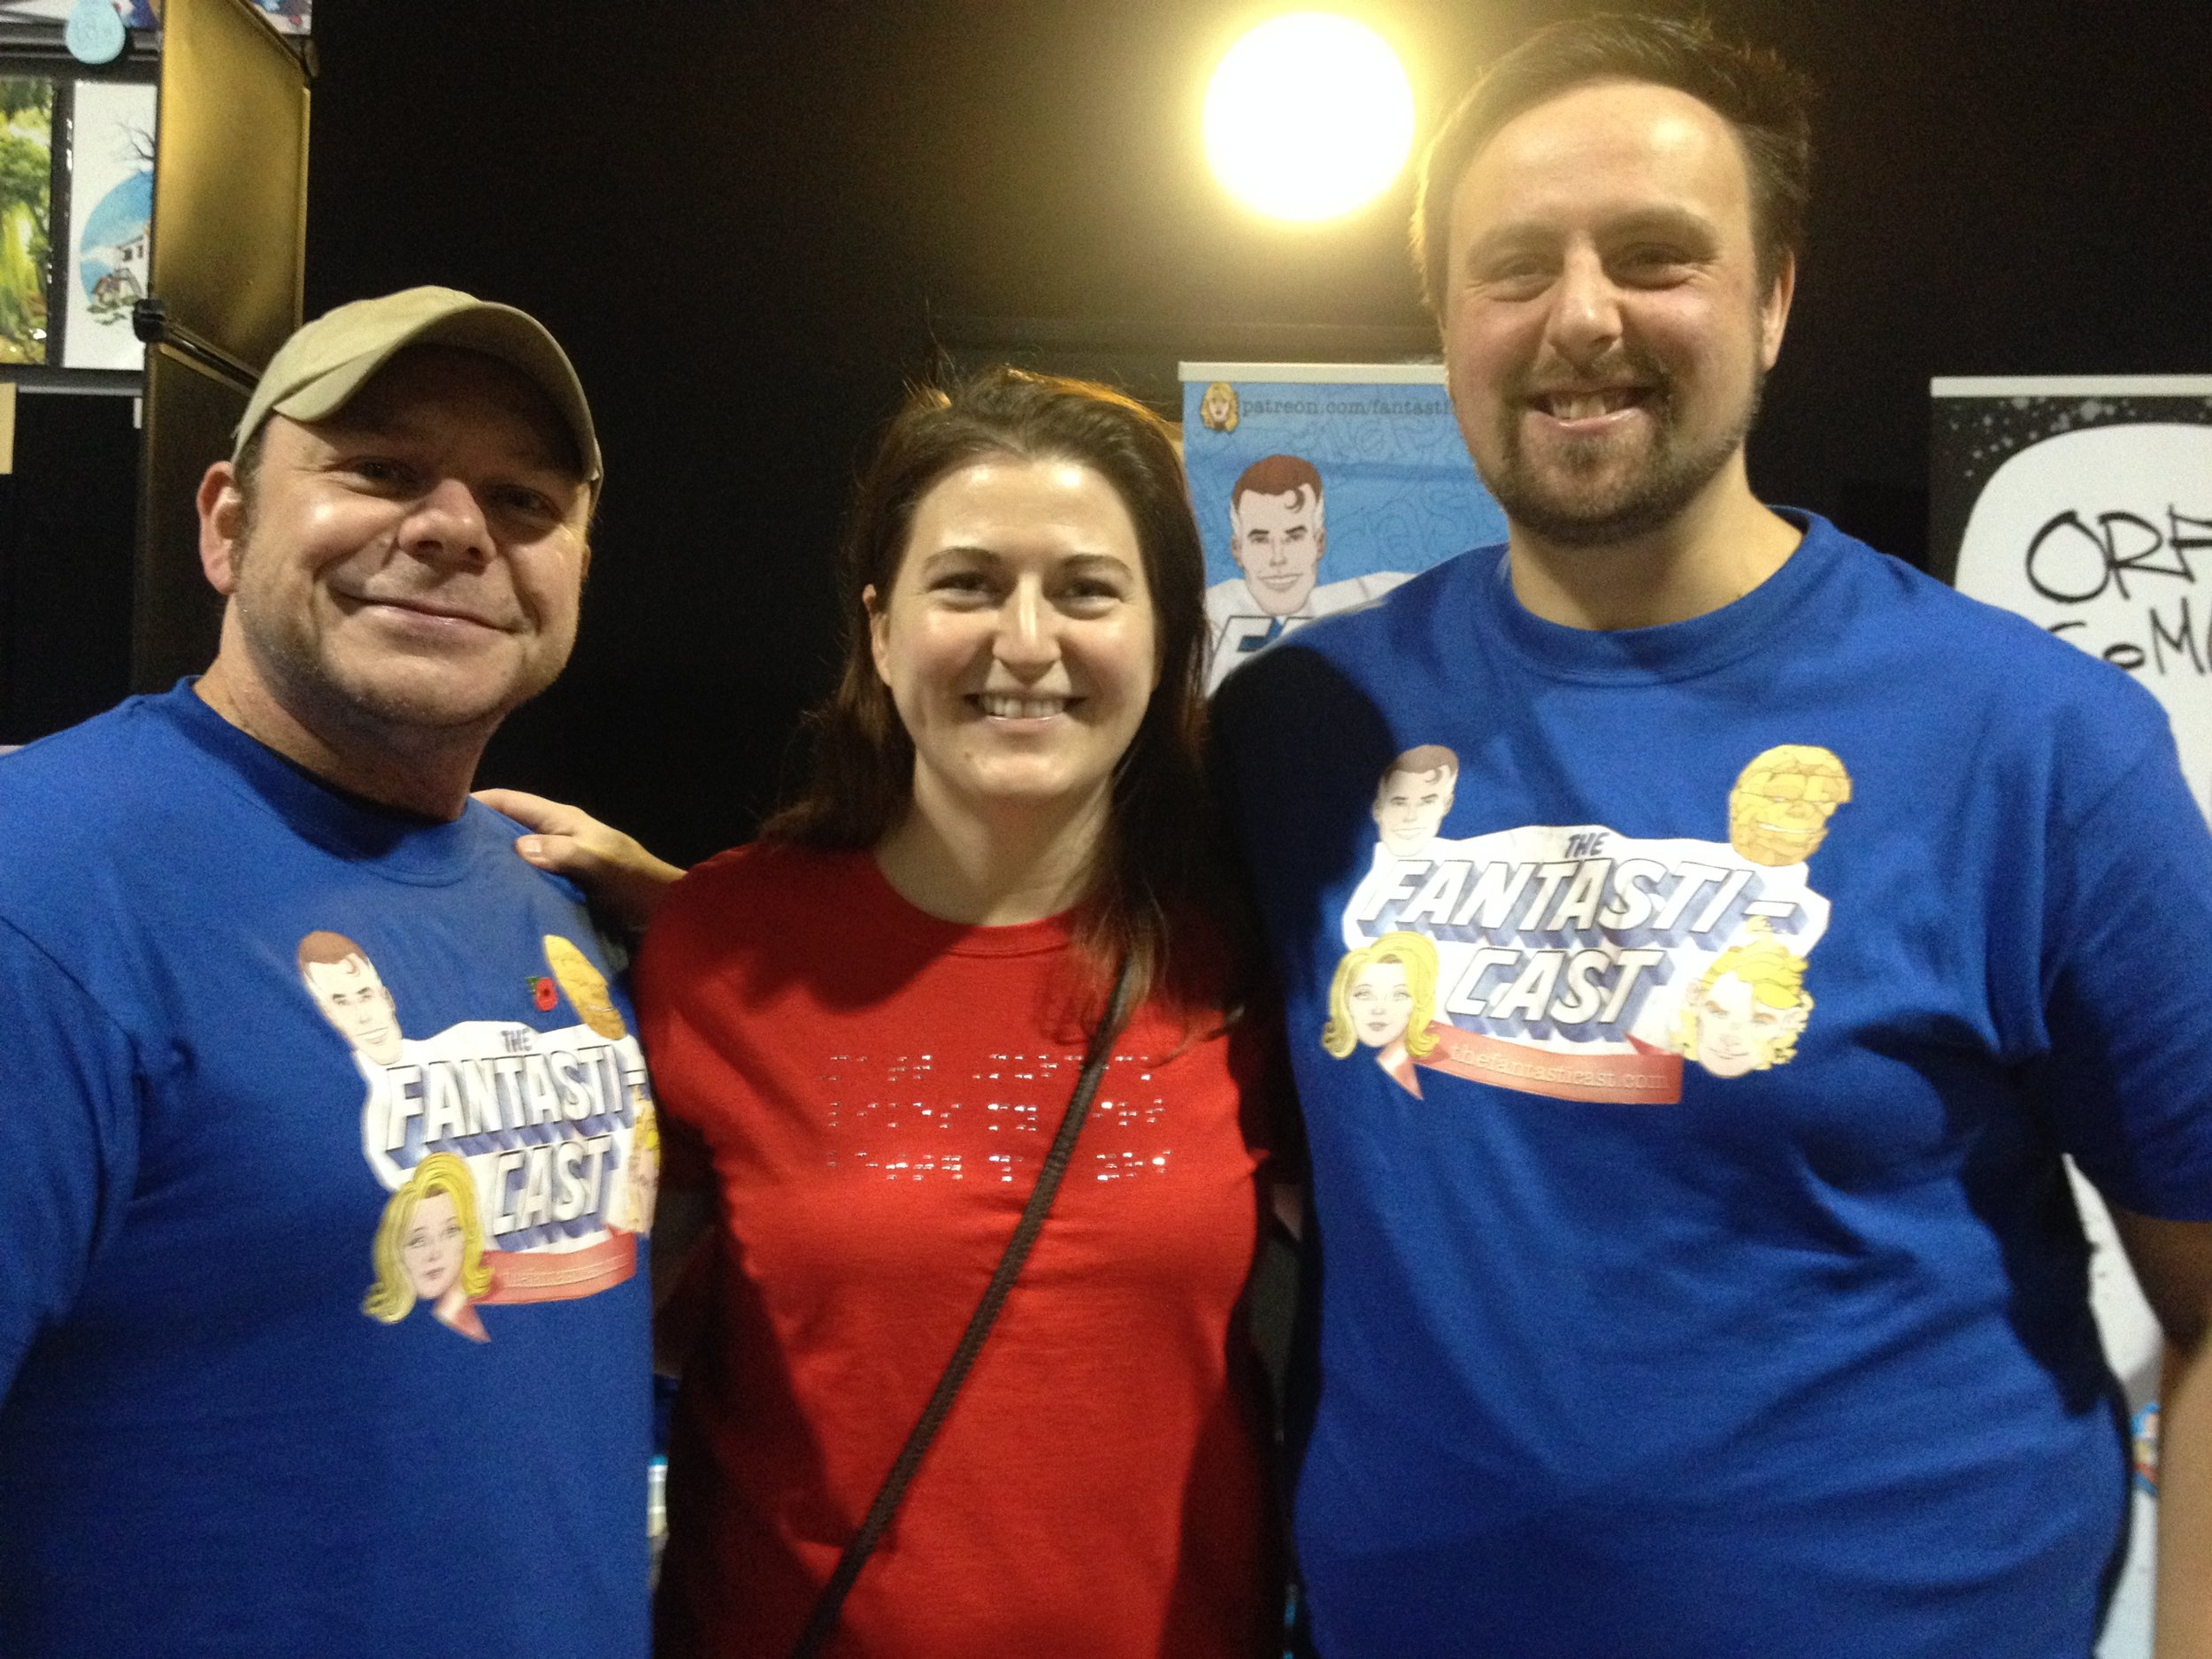 We found a Daredevil blogger! Steve and Andy meet up with our most request guest-host, Christine Hanefalk.